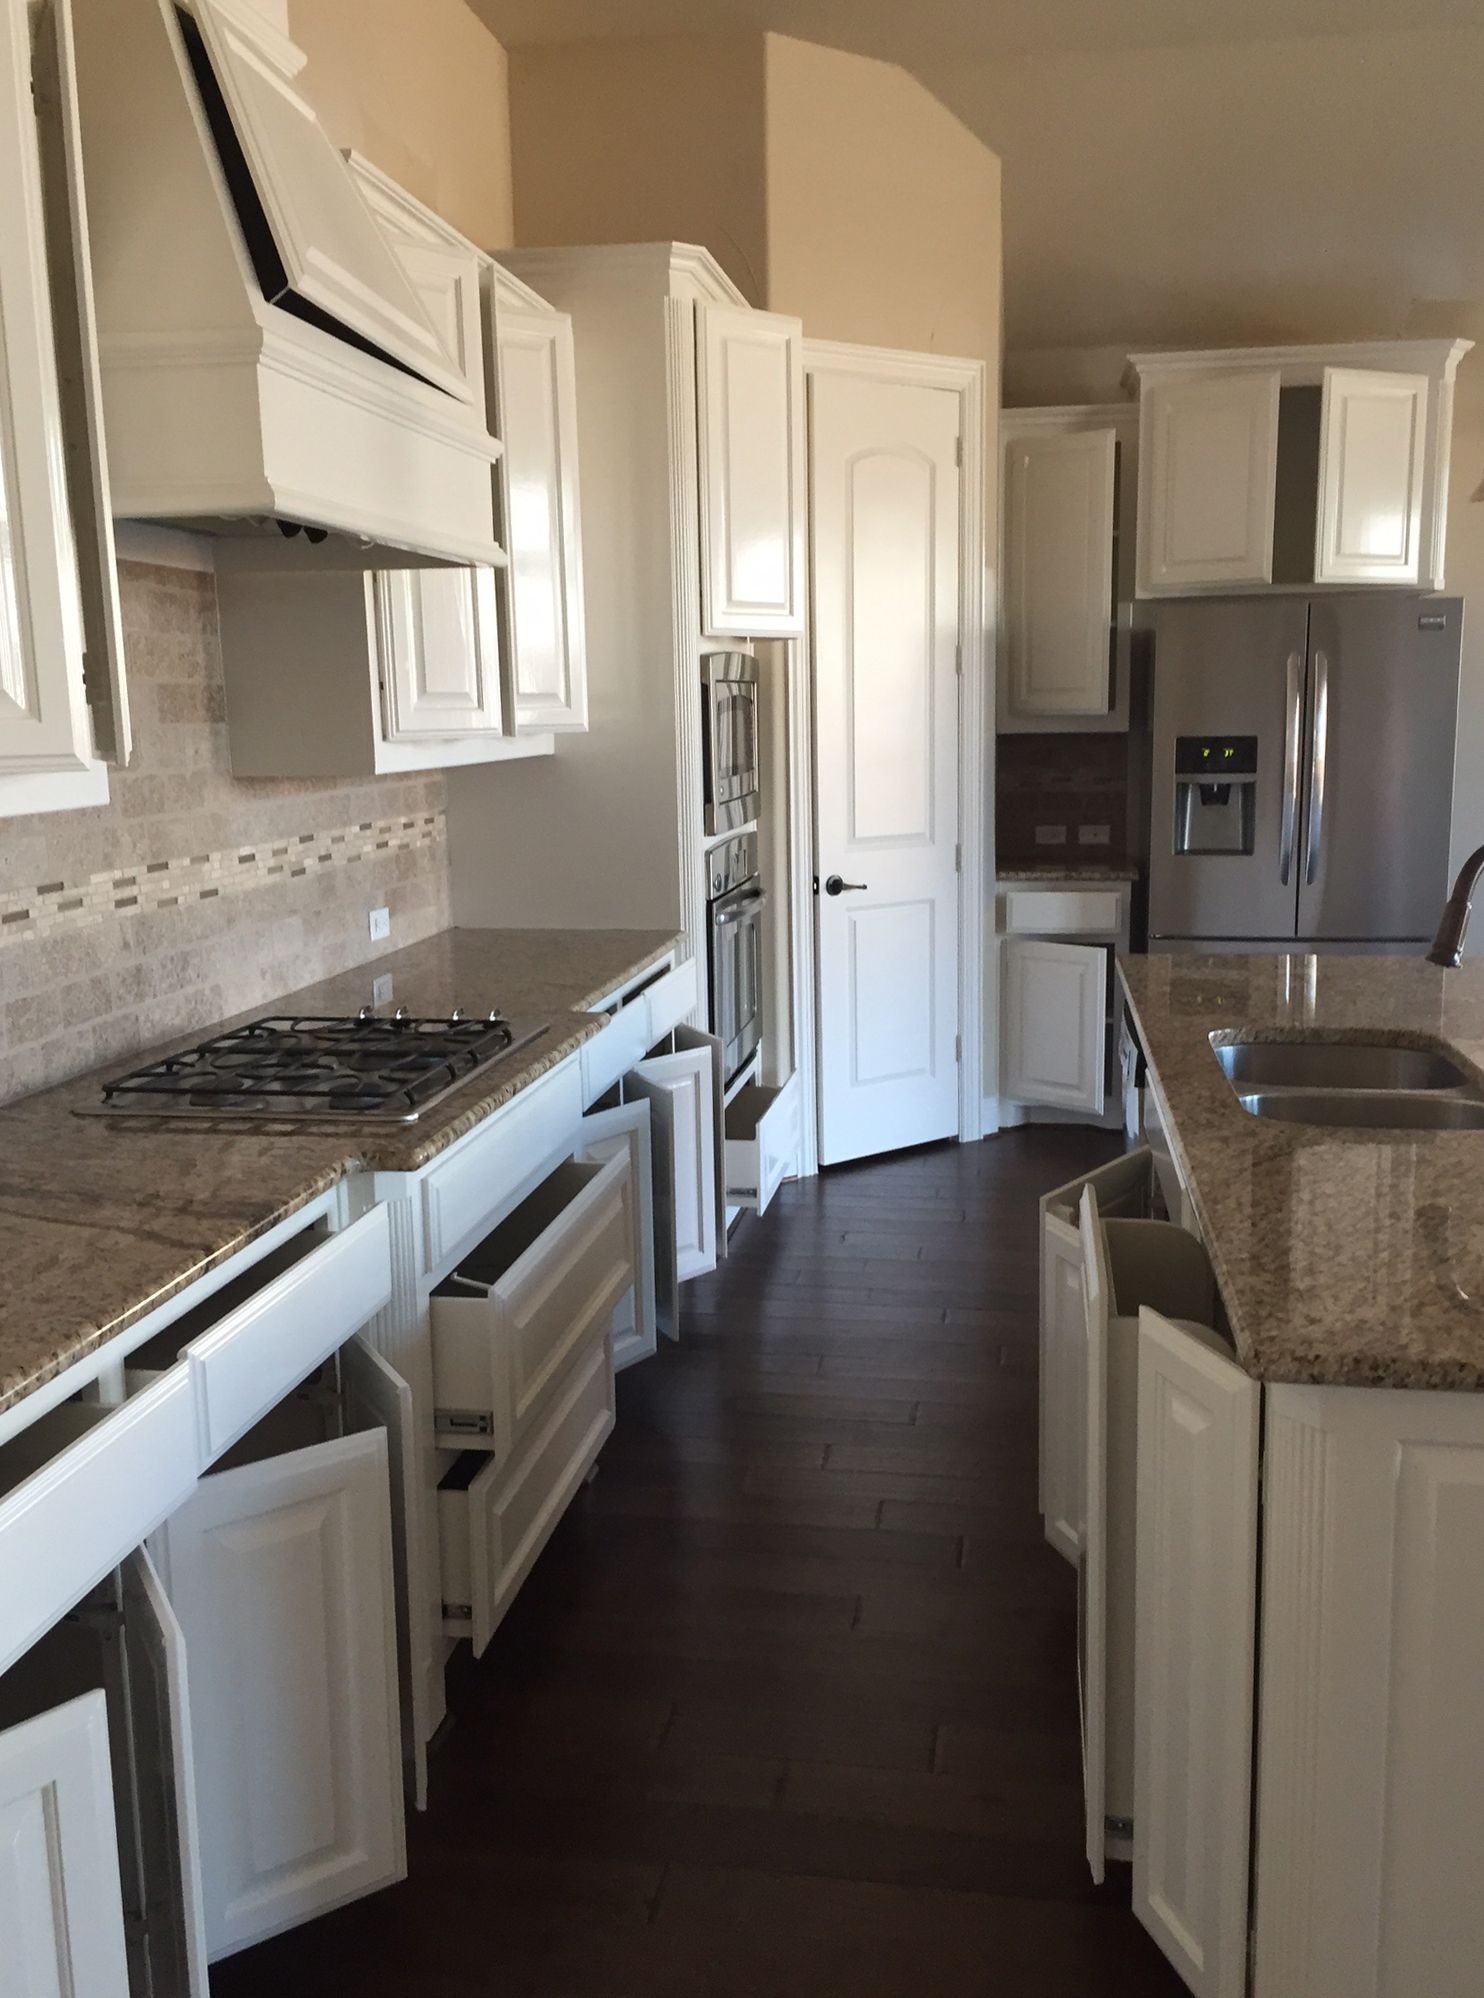 Old And Dated Oak Cabinets Were Brought Back To Life By Dfw Painting S Amazing Crew Dfwpainting Paintedc Kitchen Cabinets Custom Kitchen Cabinets Oak Cabinets Redo